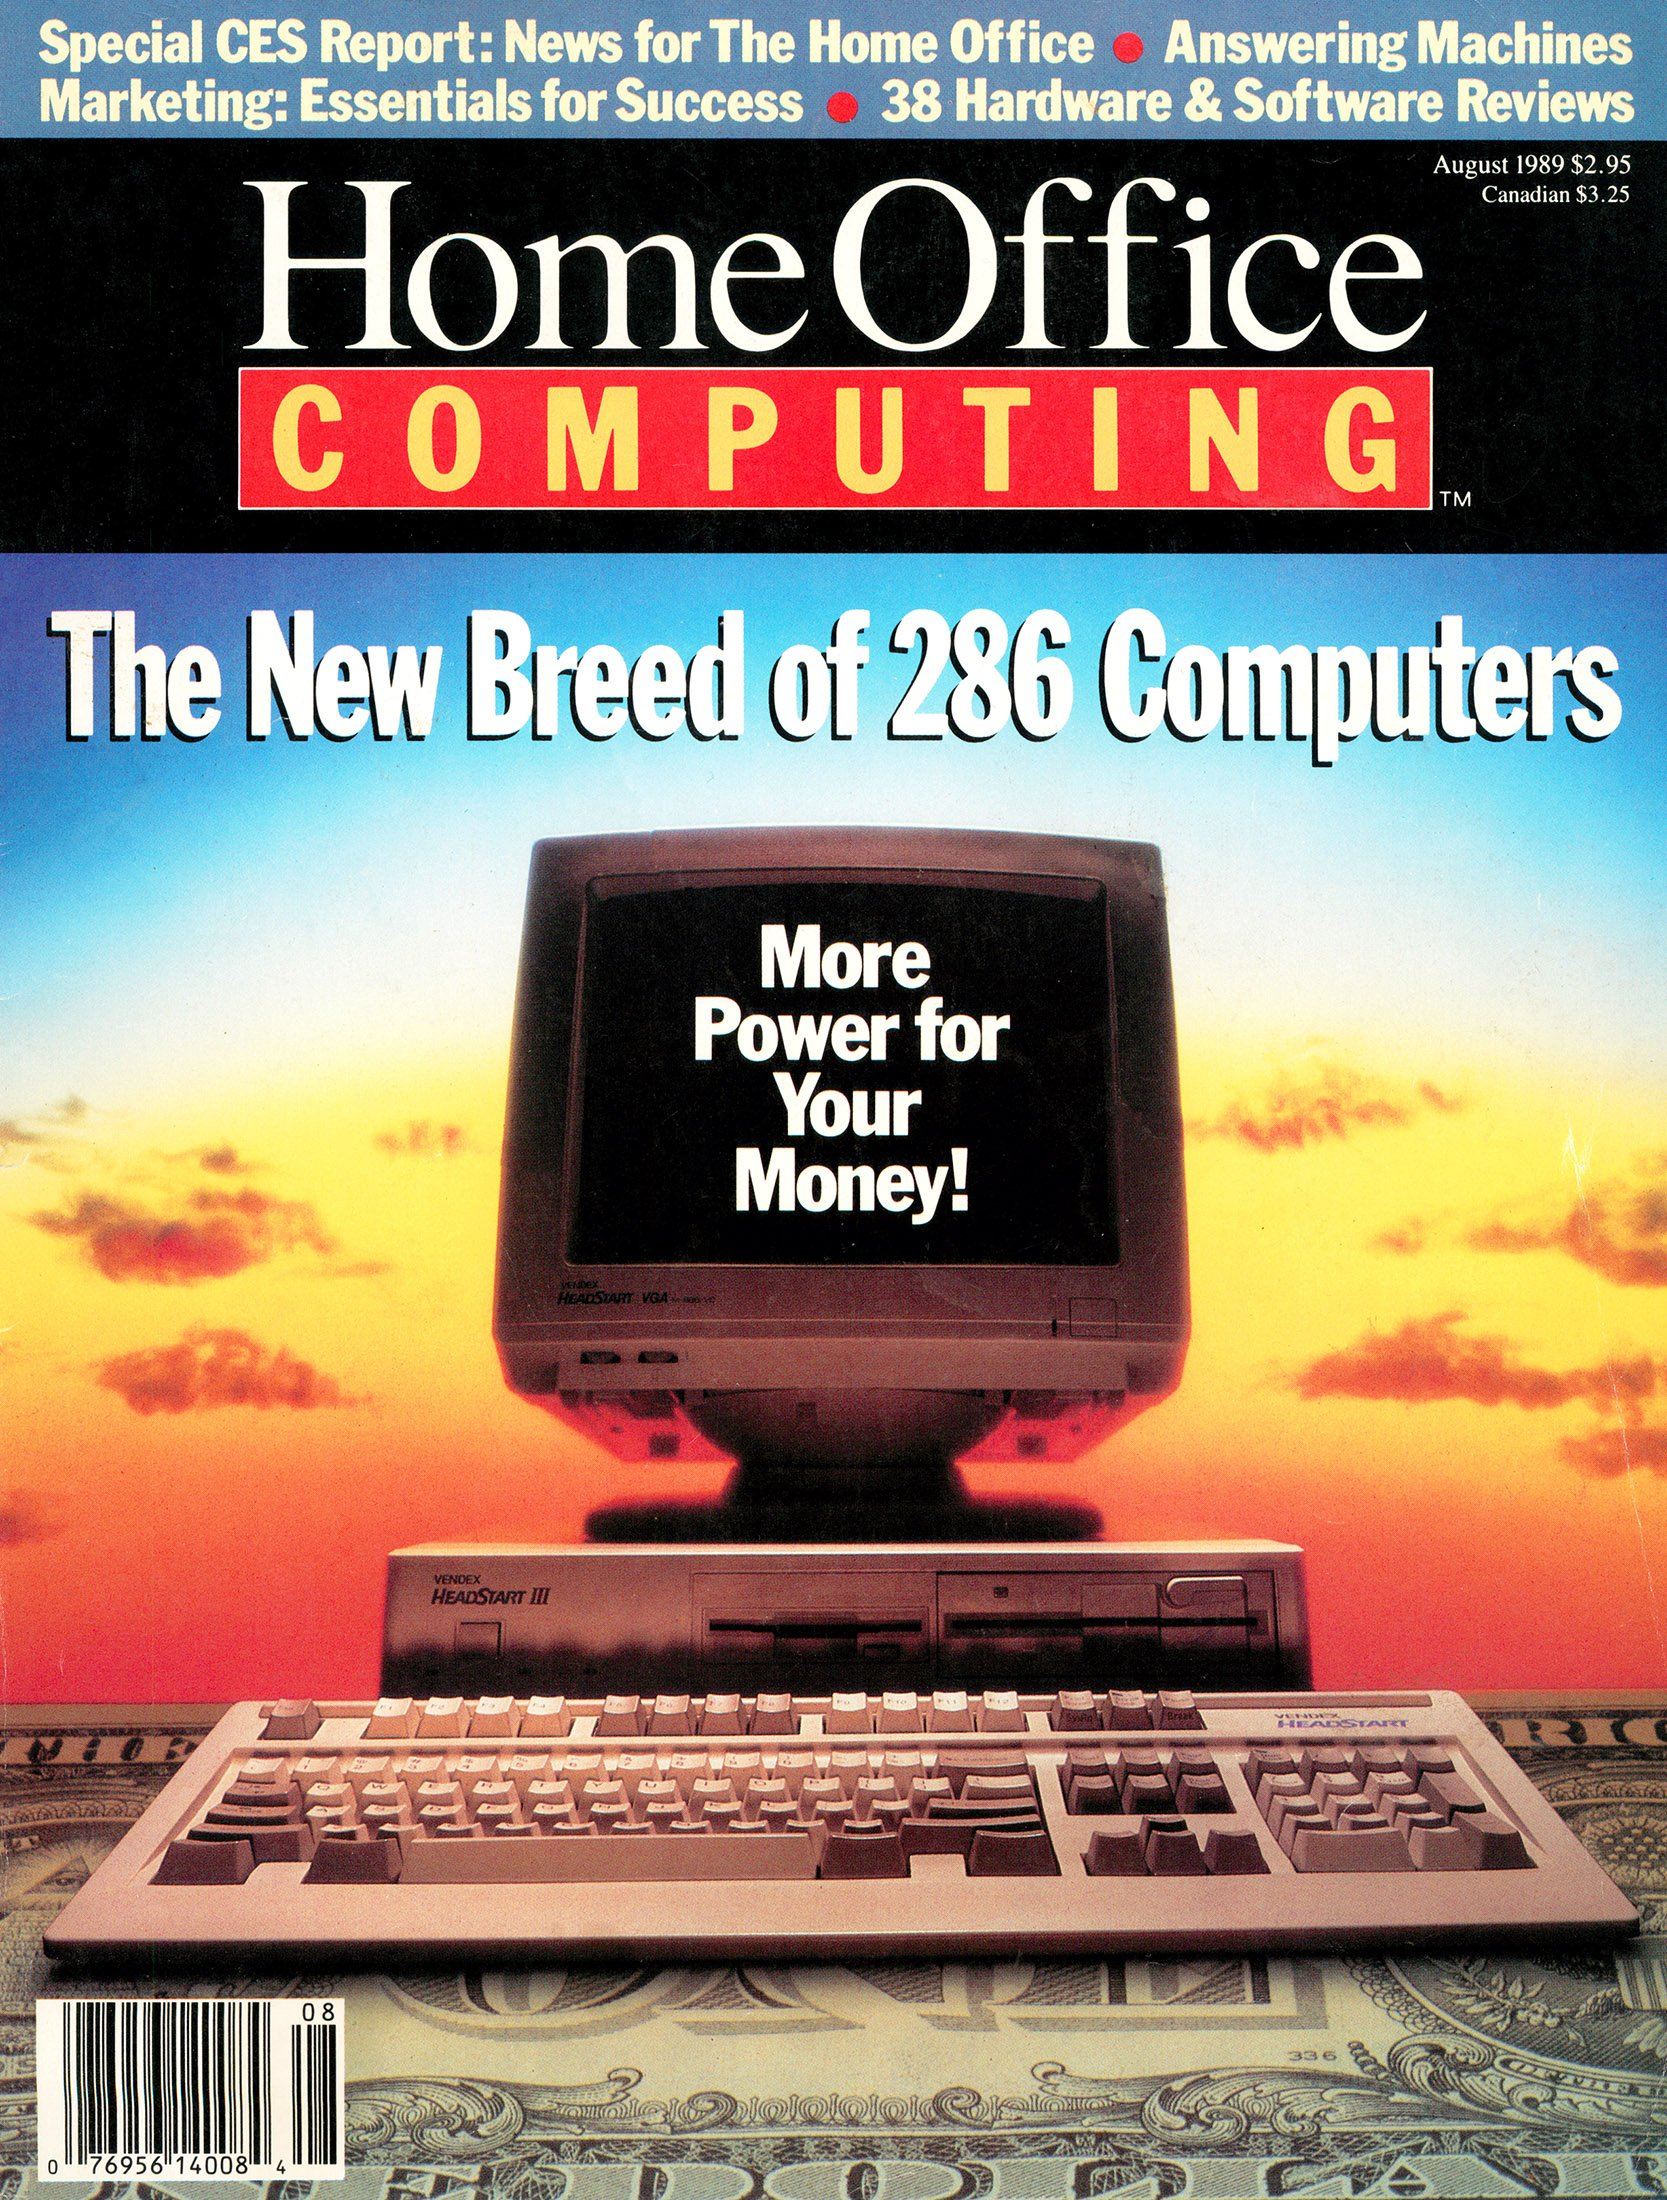 Home Office Computing Volume 7 Number 8 (August 1989)